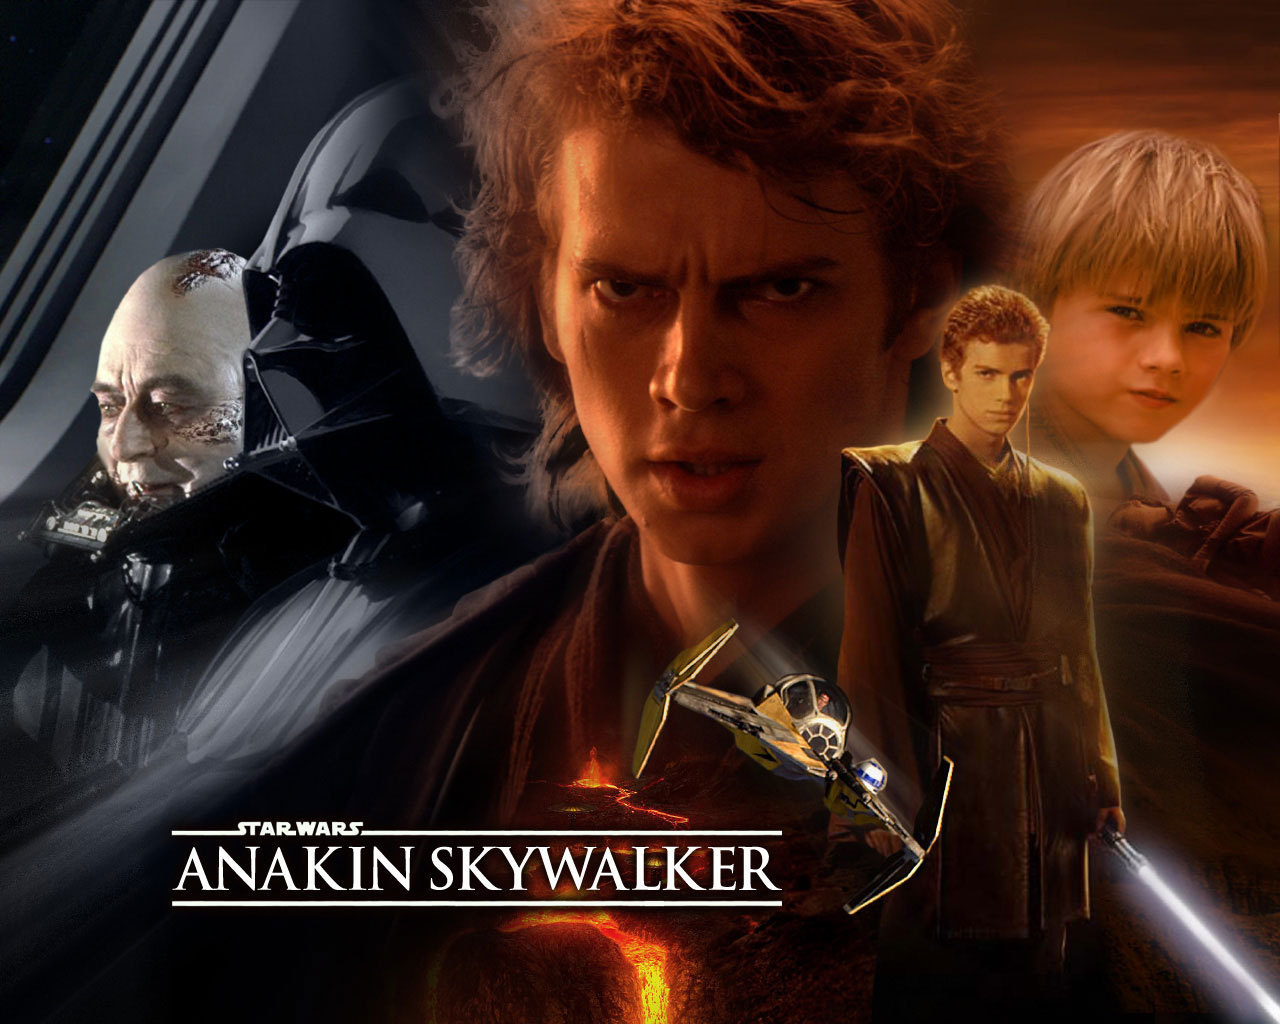 Star Wars Anakin's Evolution